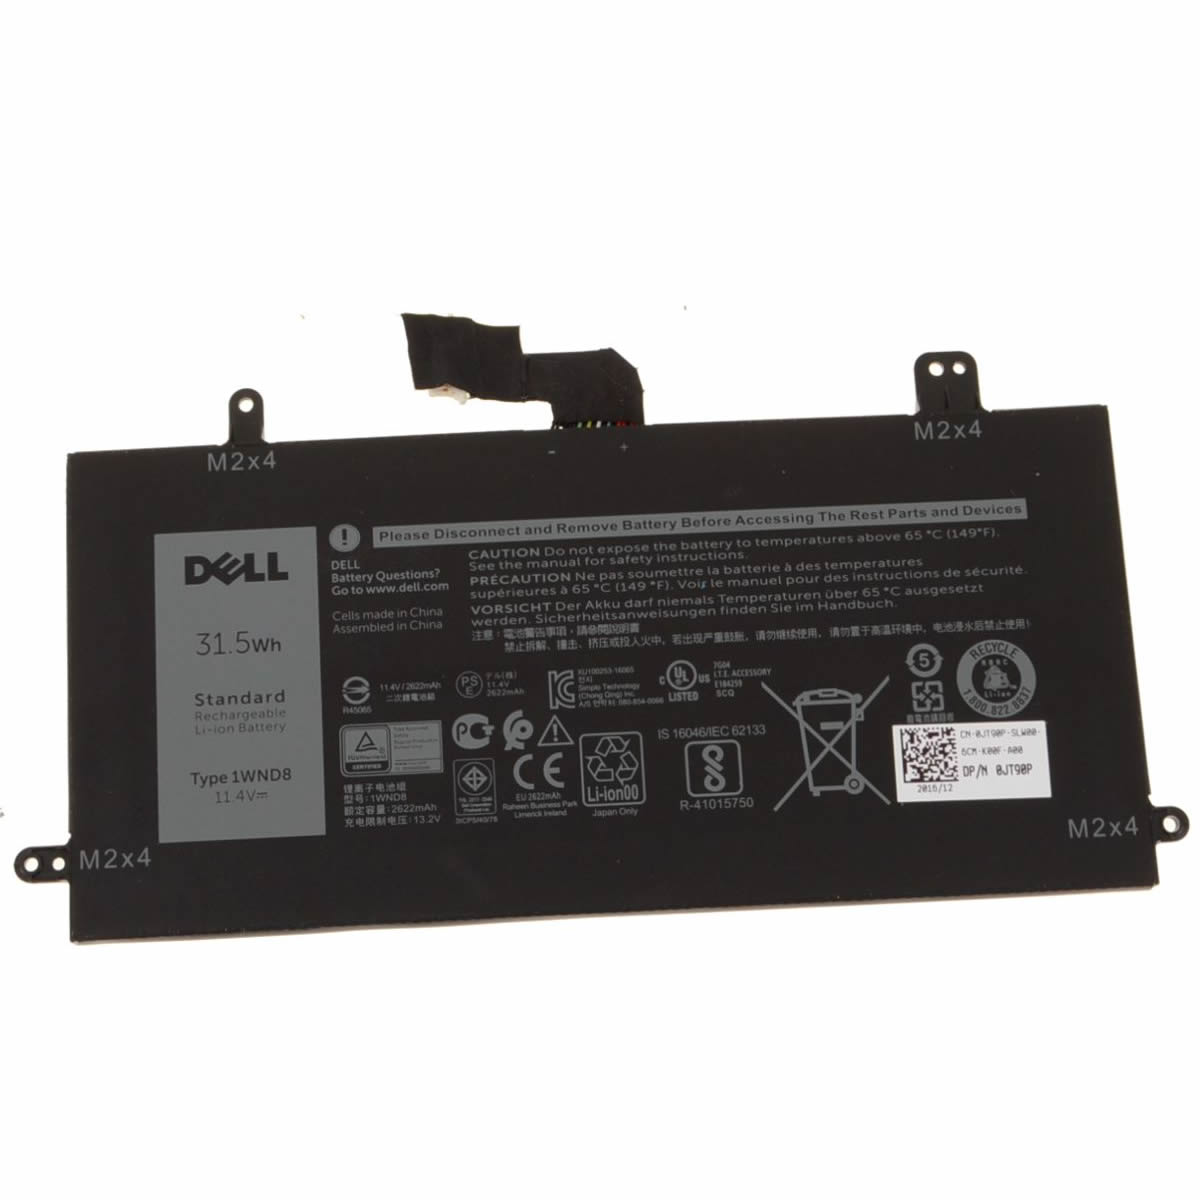 Batterie originale Dell 1WND8 11.4V 2622mAh, 31.5Wh pour ordinateur portable Dell Latitude 5285, Latitude 12 5285 séries